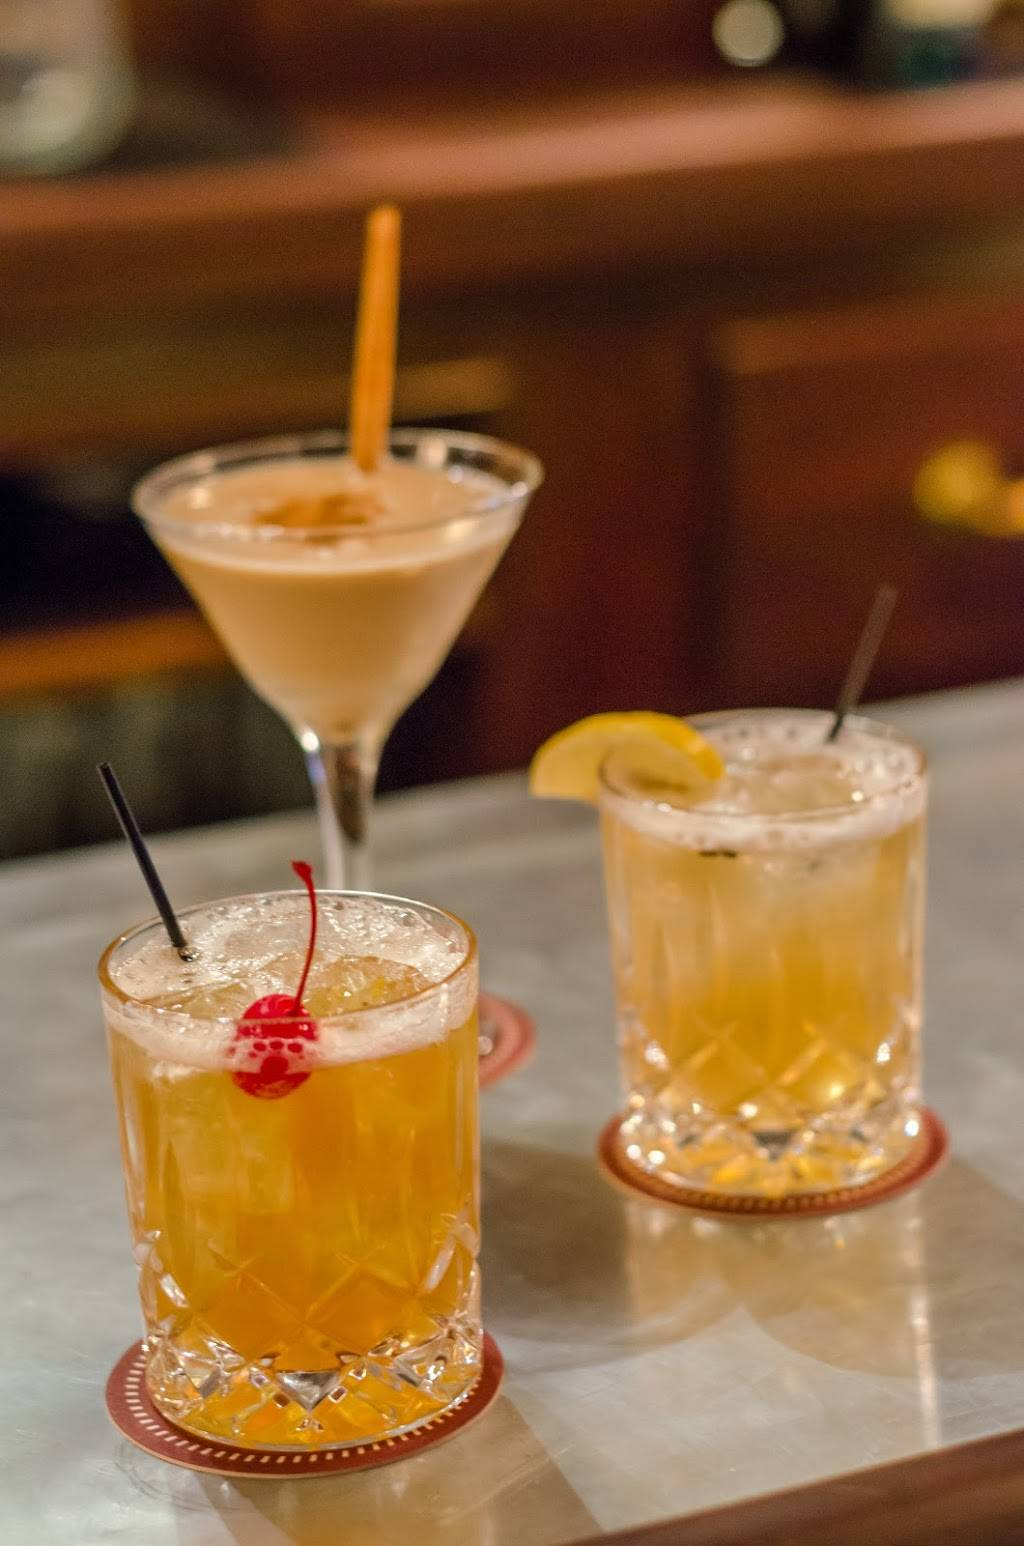 Teds Corner Tavern | restaurant | 523 3rd Ave, New York, NY 10016, USA | 2126892676 OR +1 212-689-2676